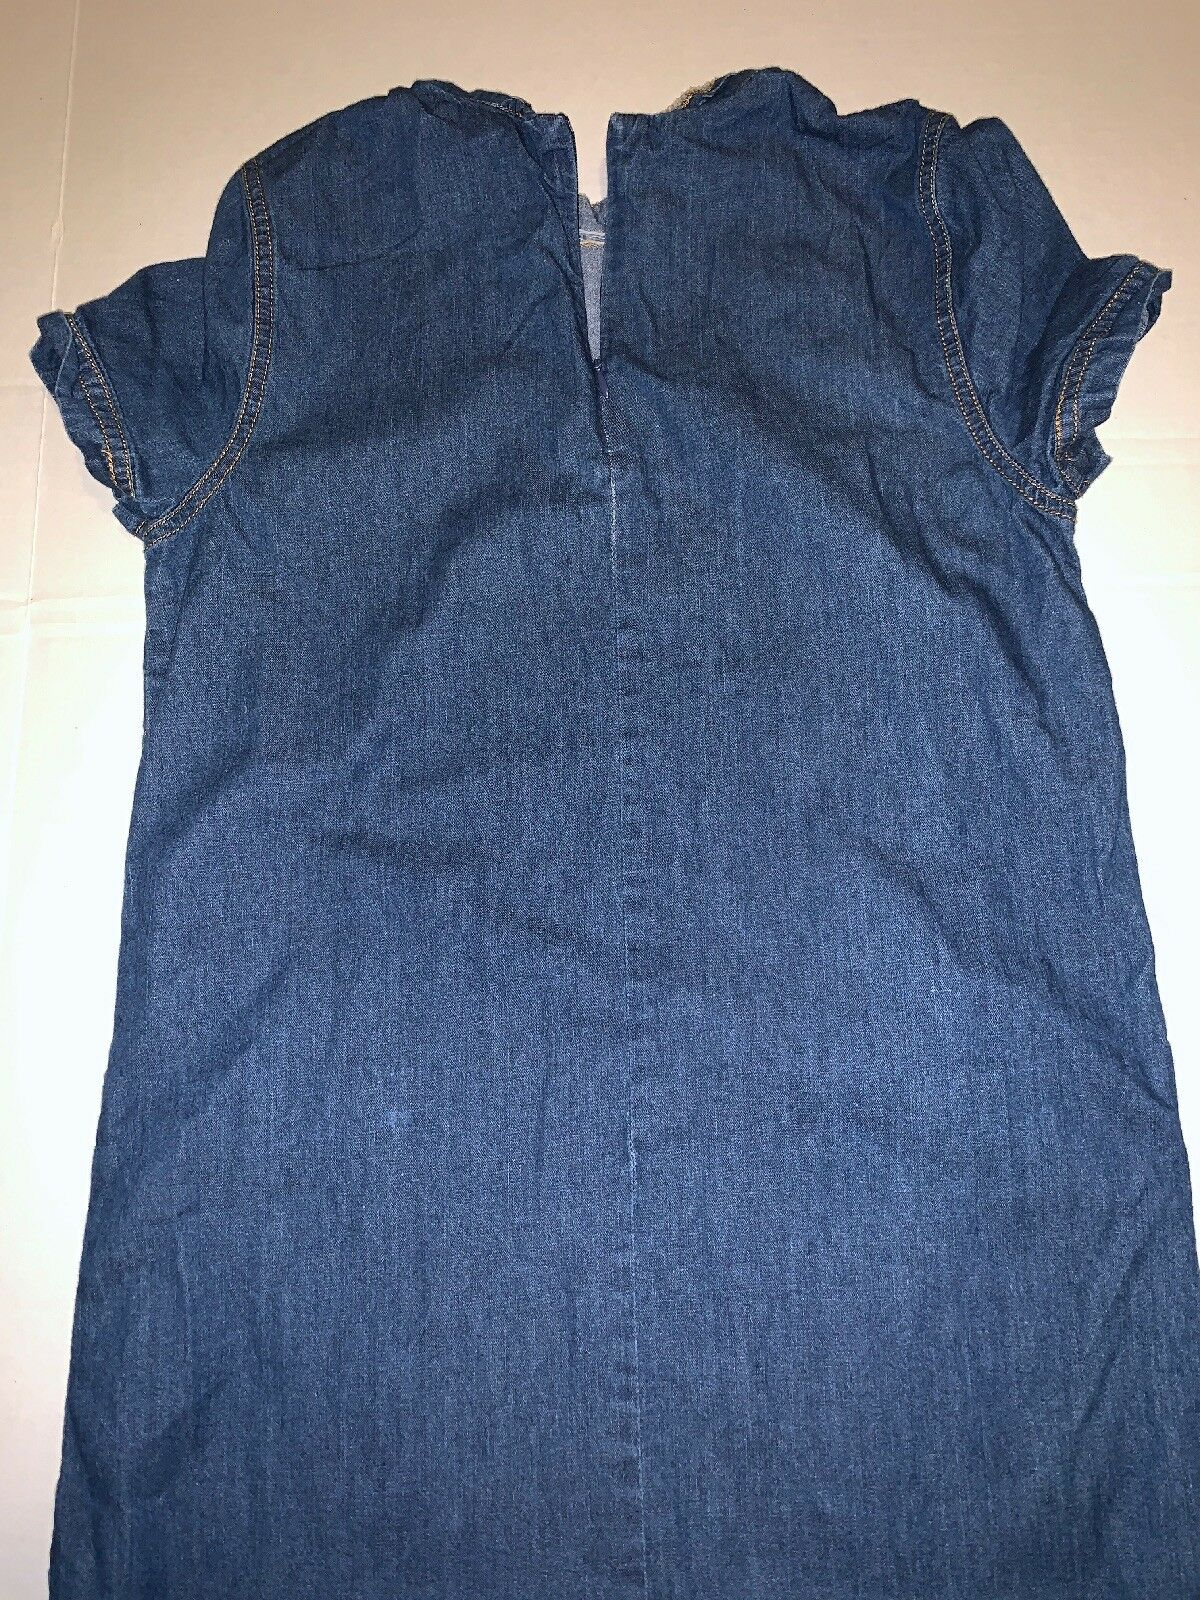 Preowned- Forever21 Dark Wash Chambray Denim Dres… - image 7